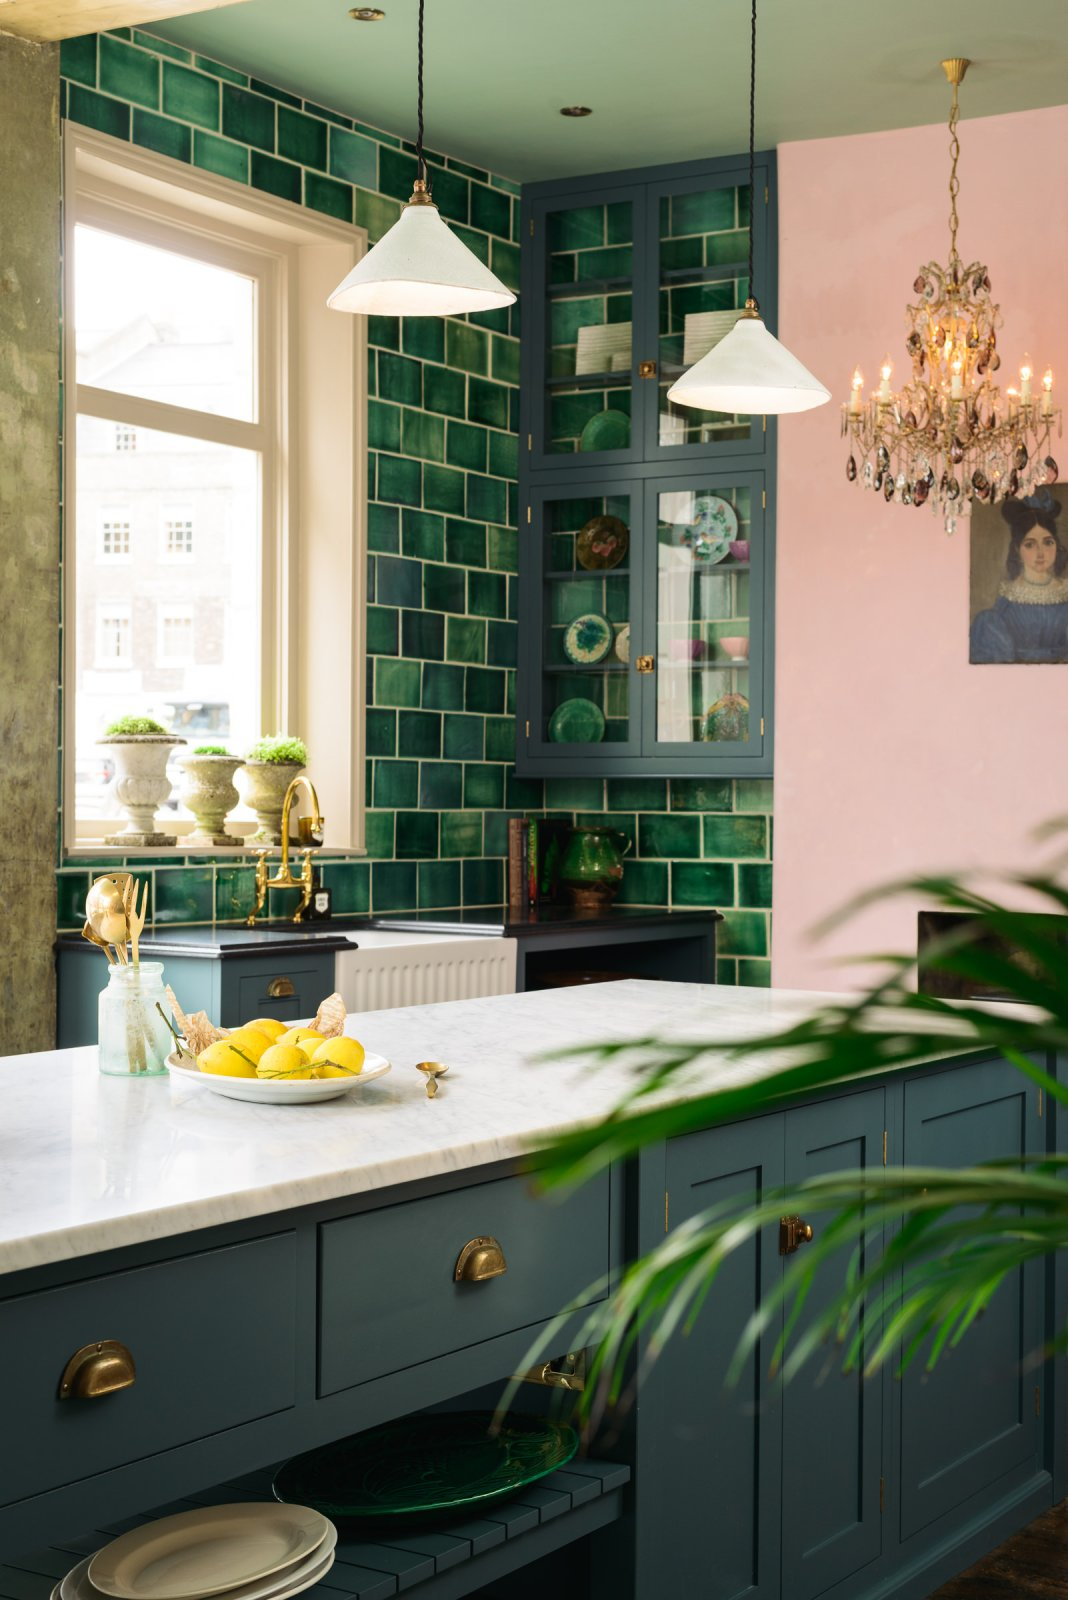 A Pink & Green Kitchen - Honestly WTF